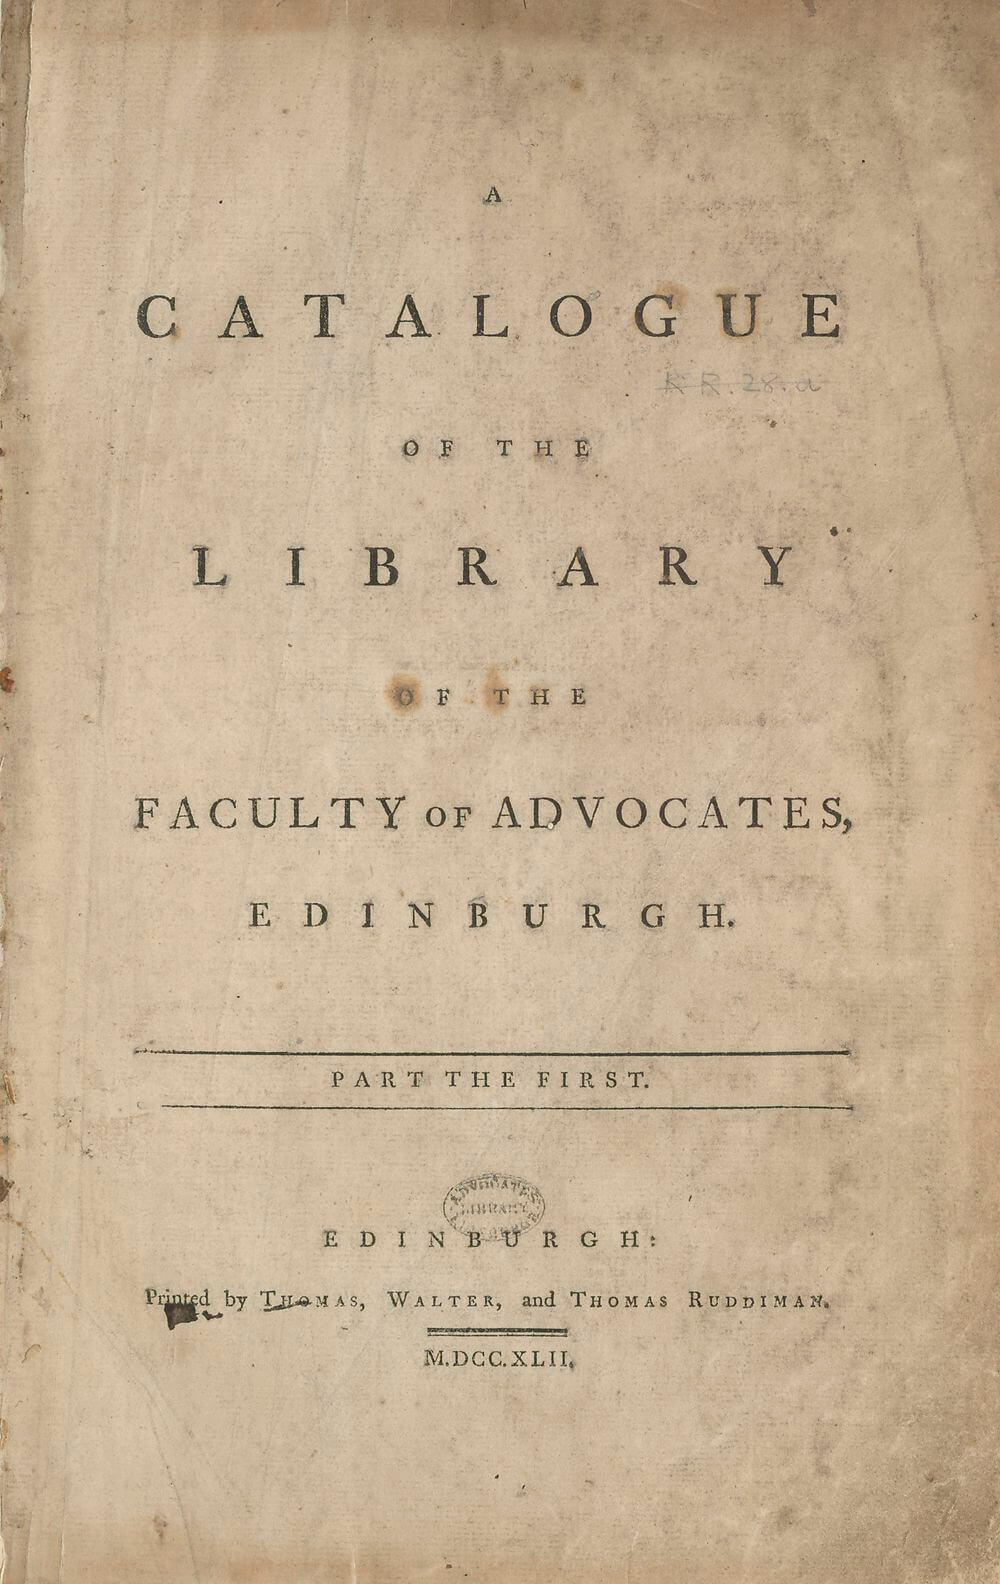 The Advocates' Library kept a collection of books (law and otherwise) since the Faculty's inauguration in 1689. This series was the third such catalog of books in the library, and as can be seen in the interior pages, was used to record not only the acquisition of books, but their changing shelfmarks.